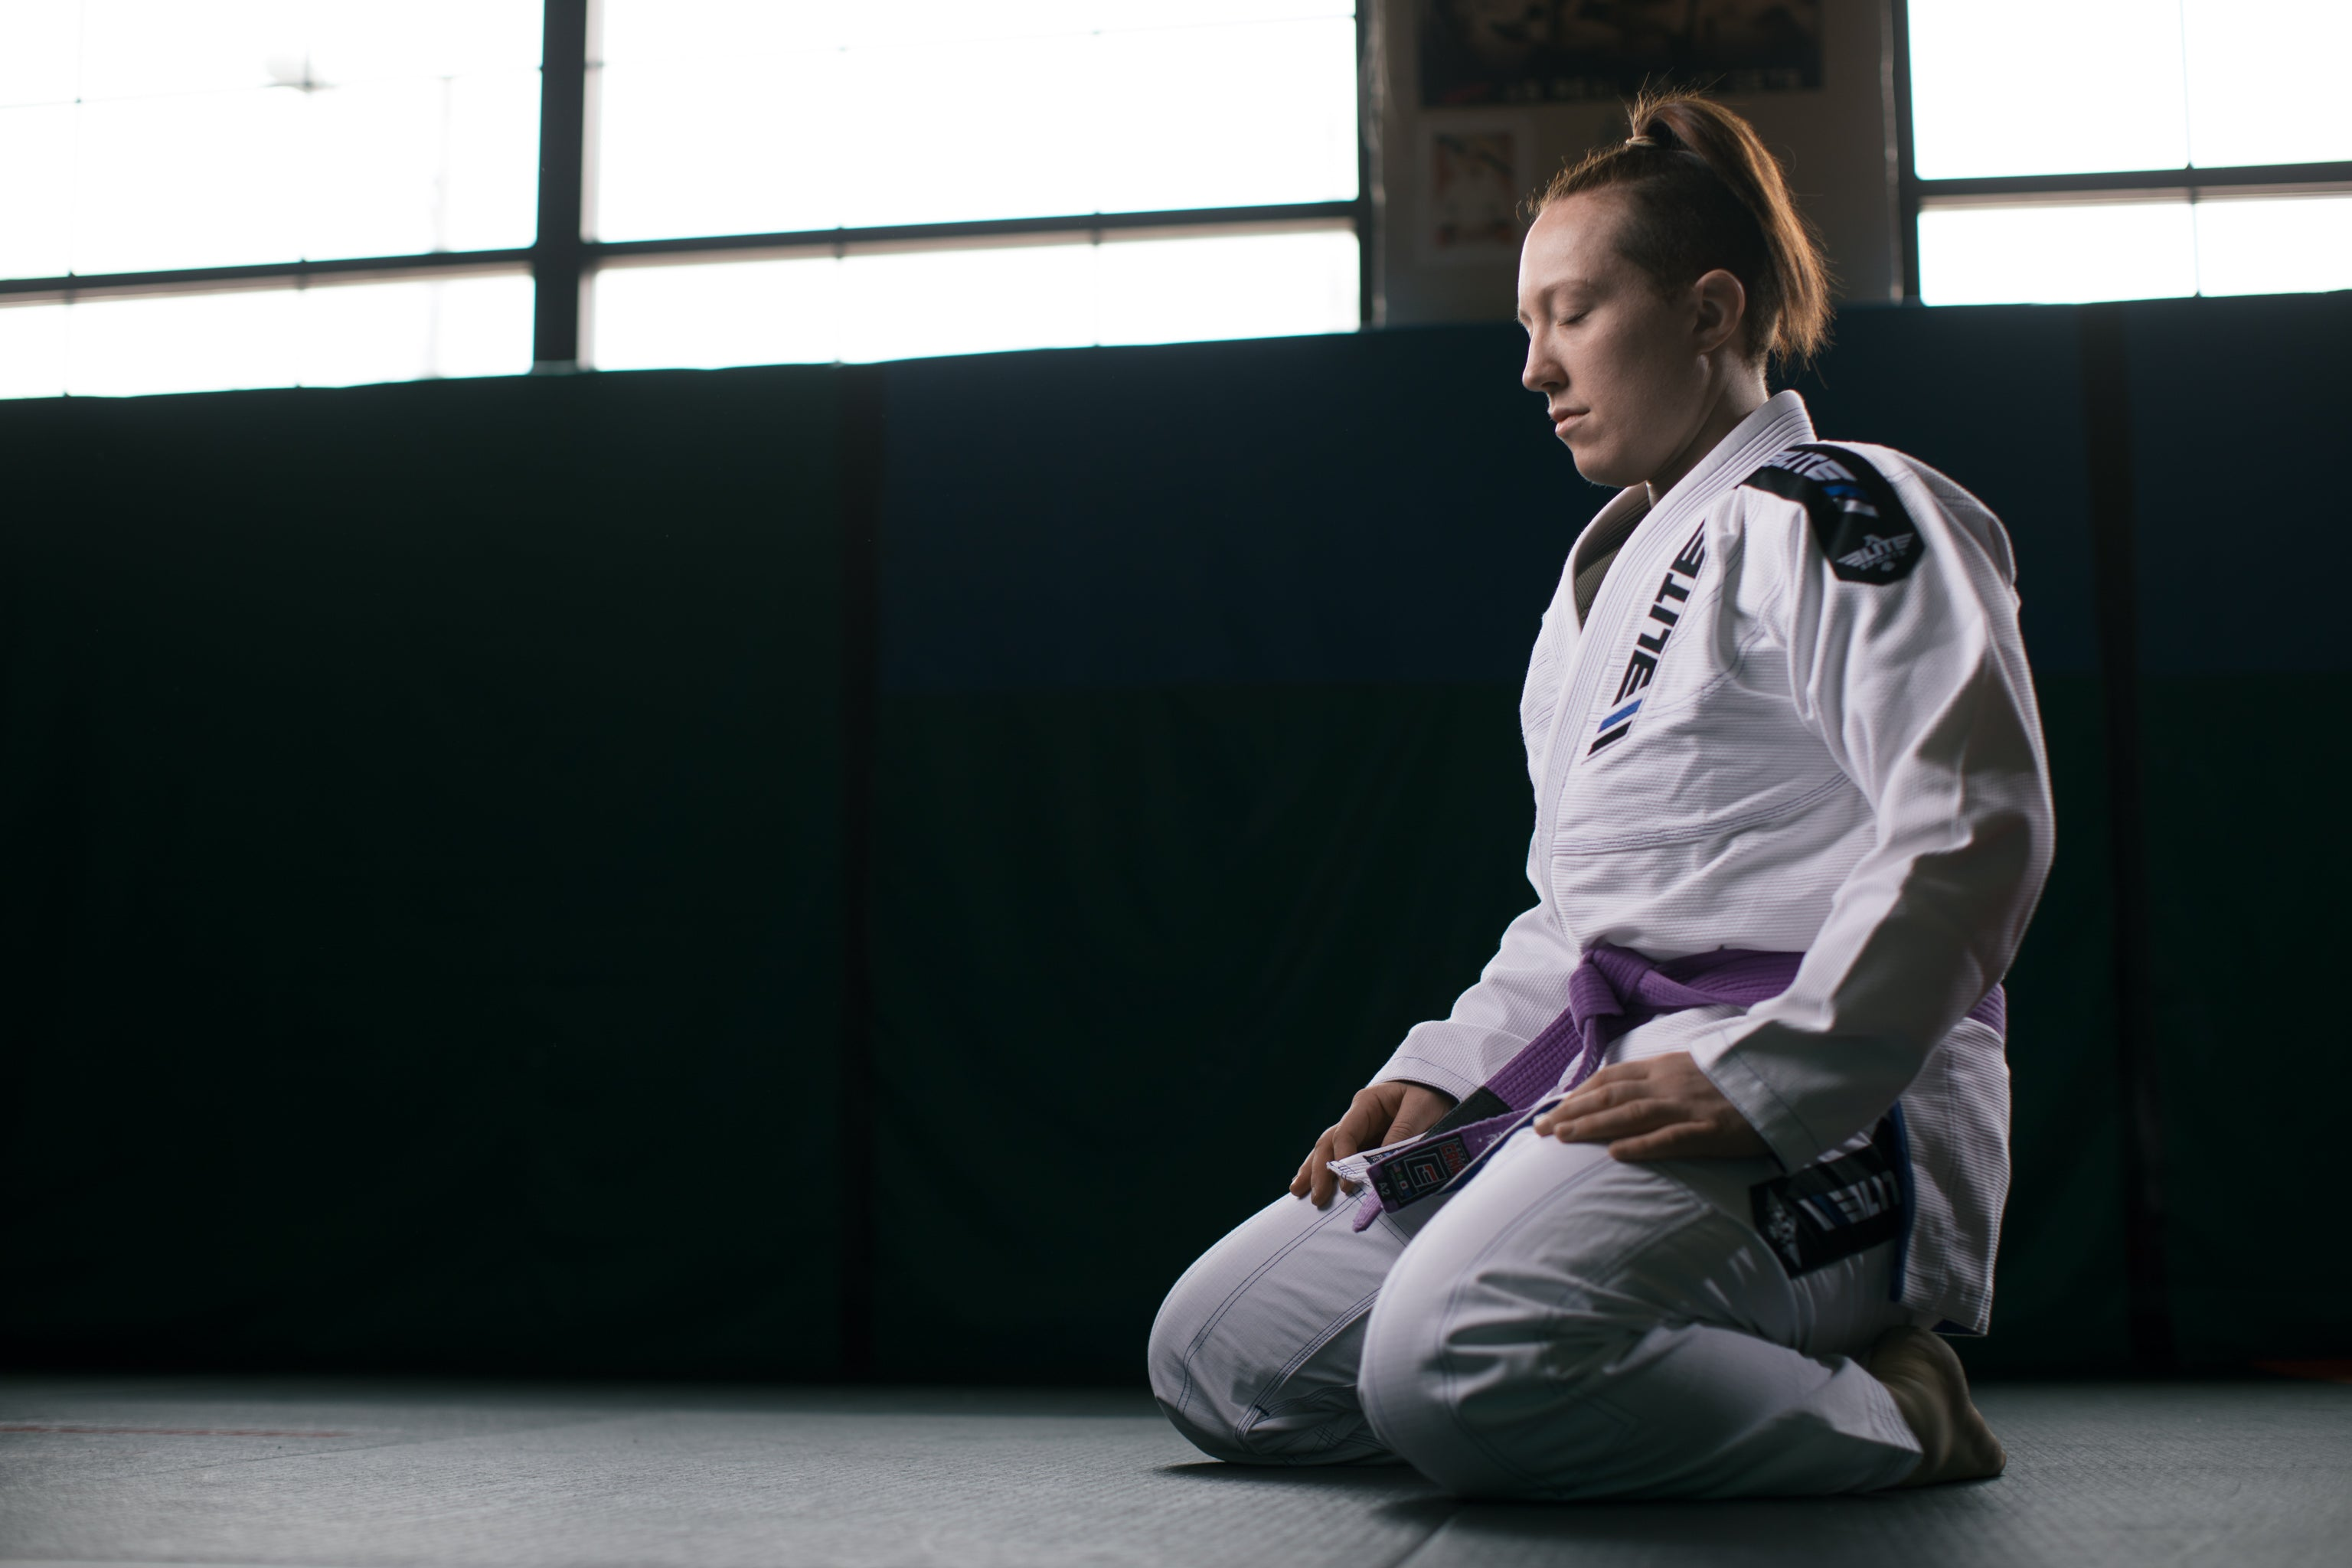 Elite Sports Team Elite Bjj Fighter Jessica Michelle Sunier Image5